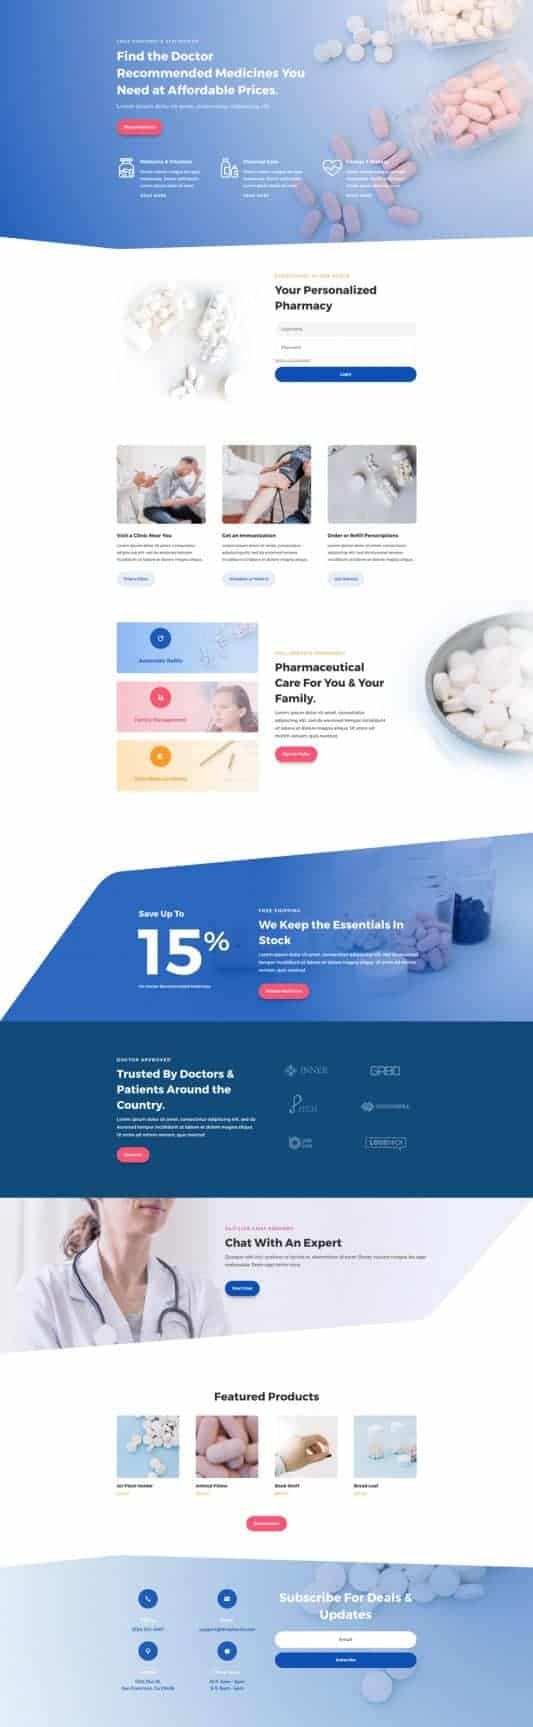 The Pharmacy Page Style: Homepage Design 1